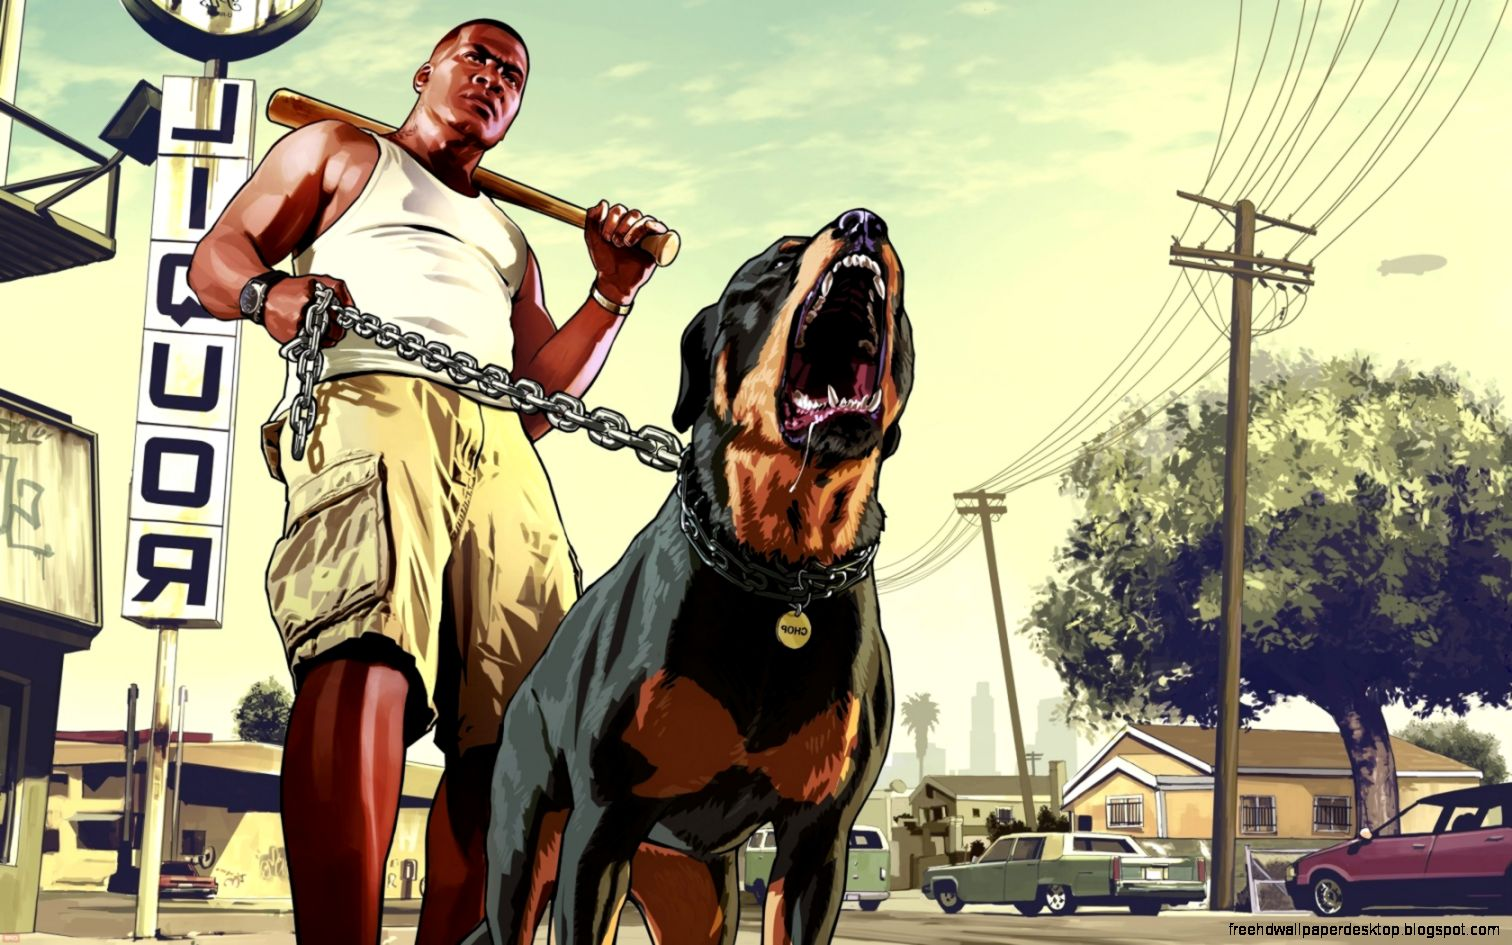 Gta 5 With Dog Wallpaper Hd | Free High Definition Wallpapers